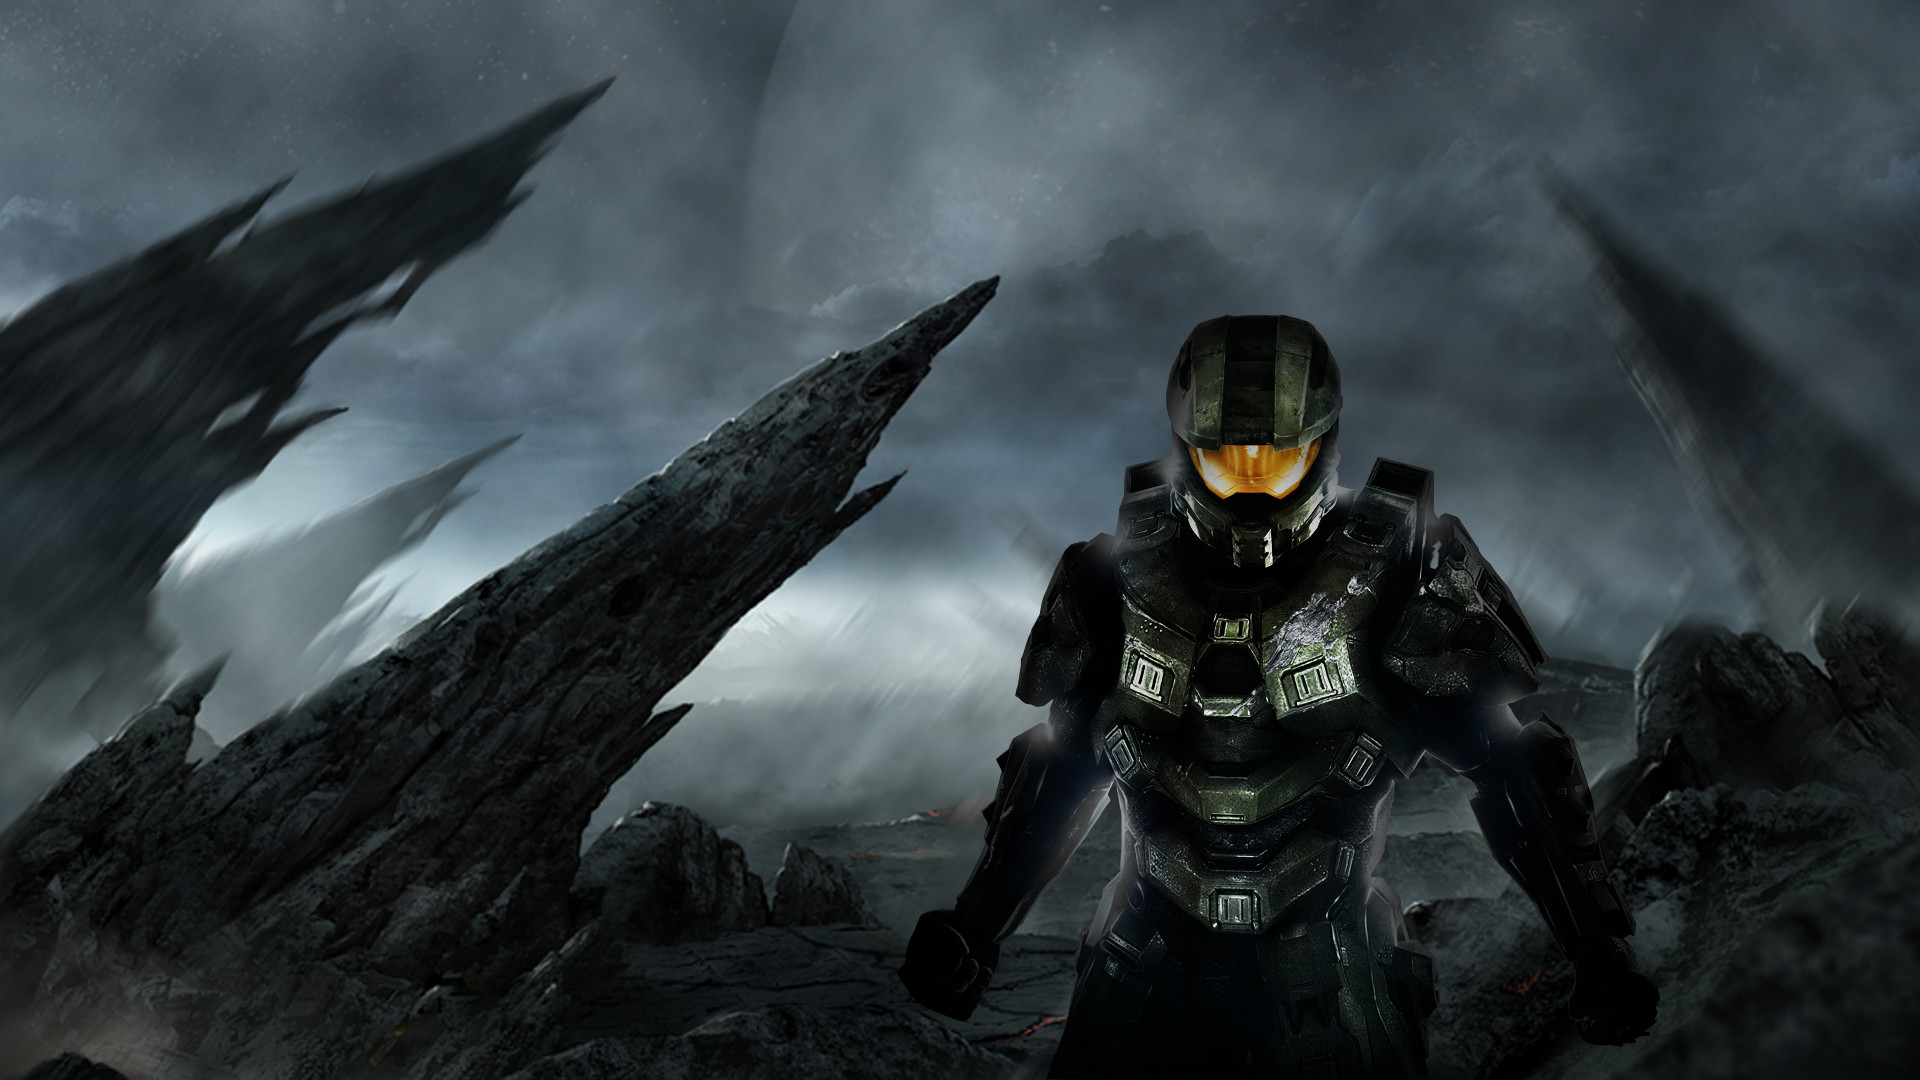 1920x1080 Halo Wallpaper